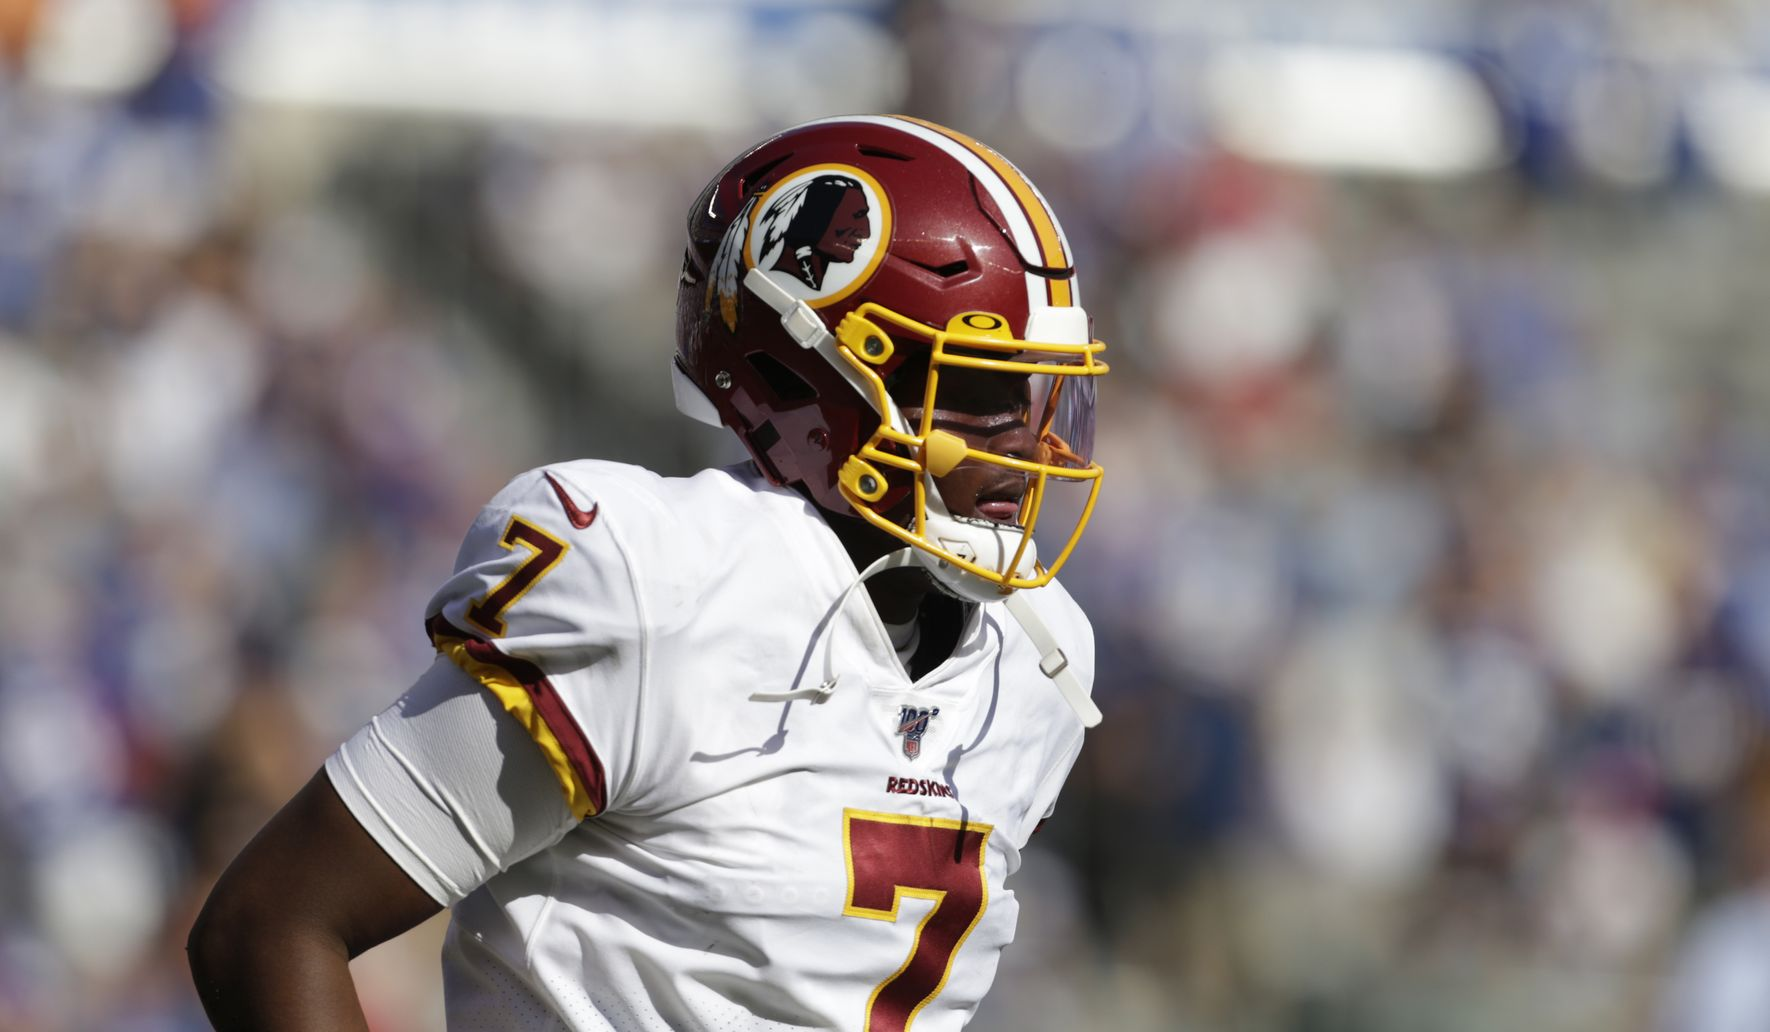 Redskins-Patriots: How to watch, TV channel, what time